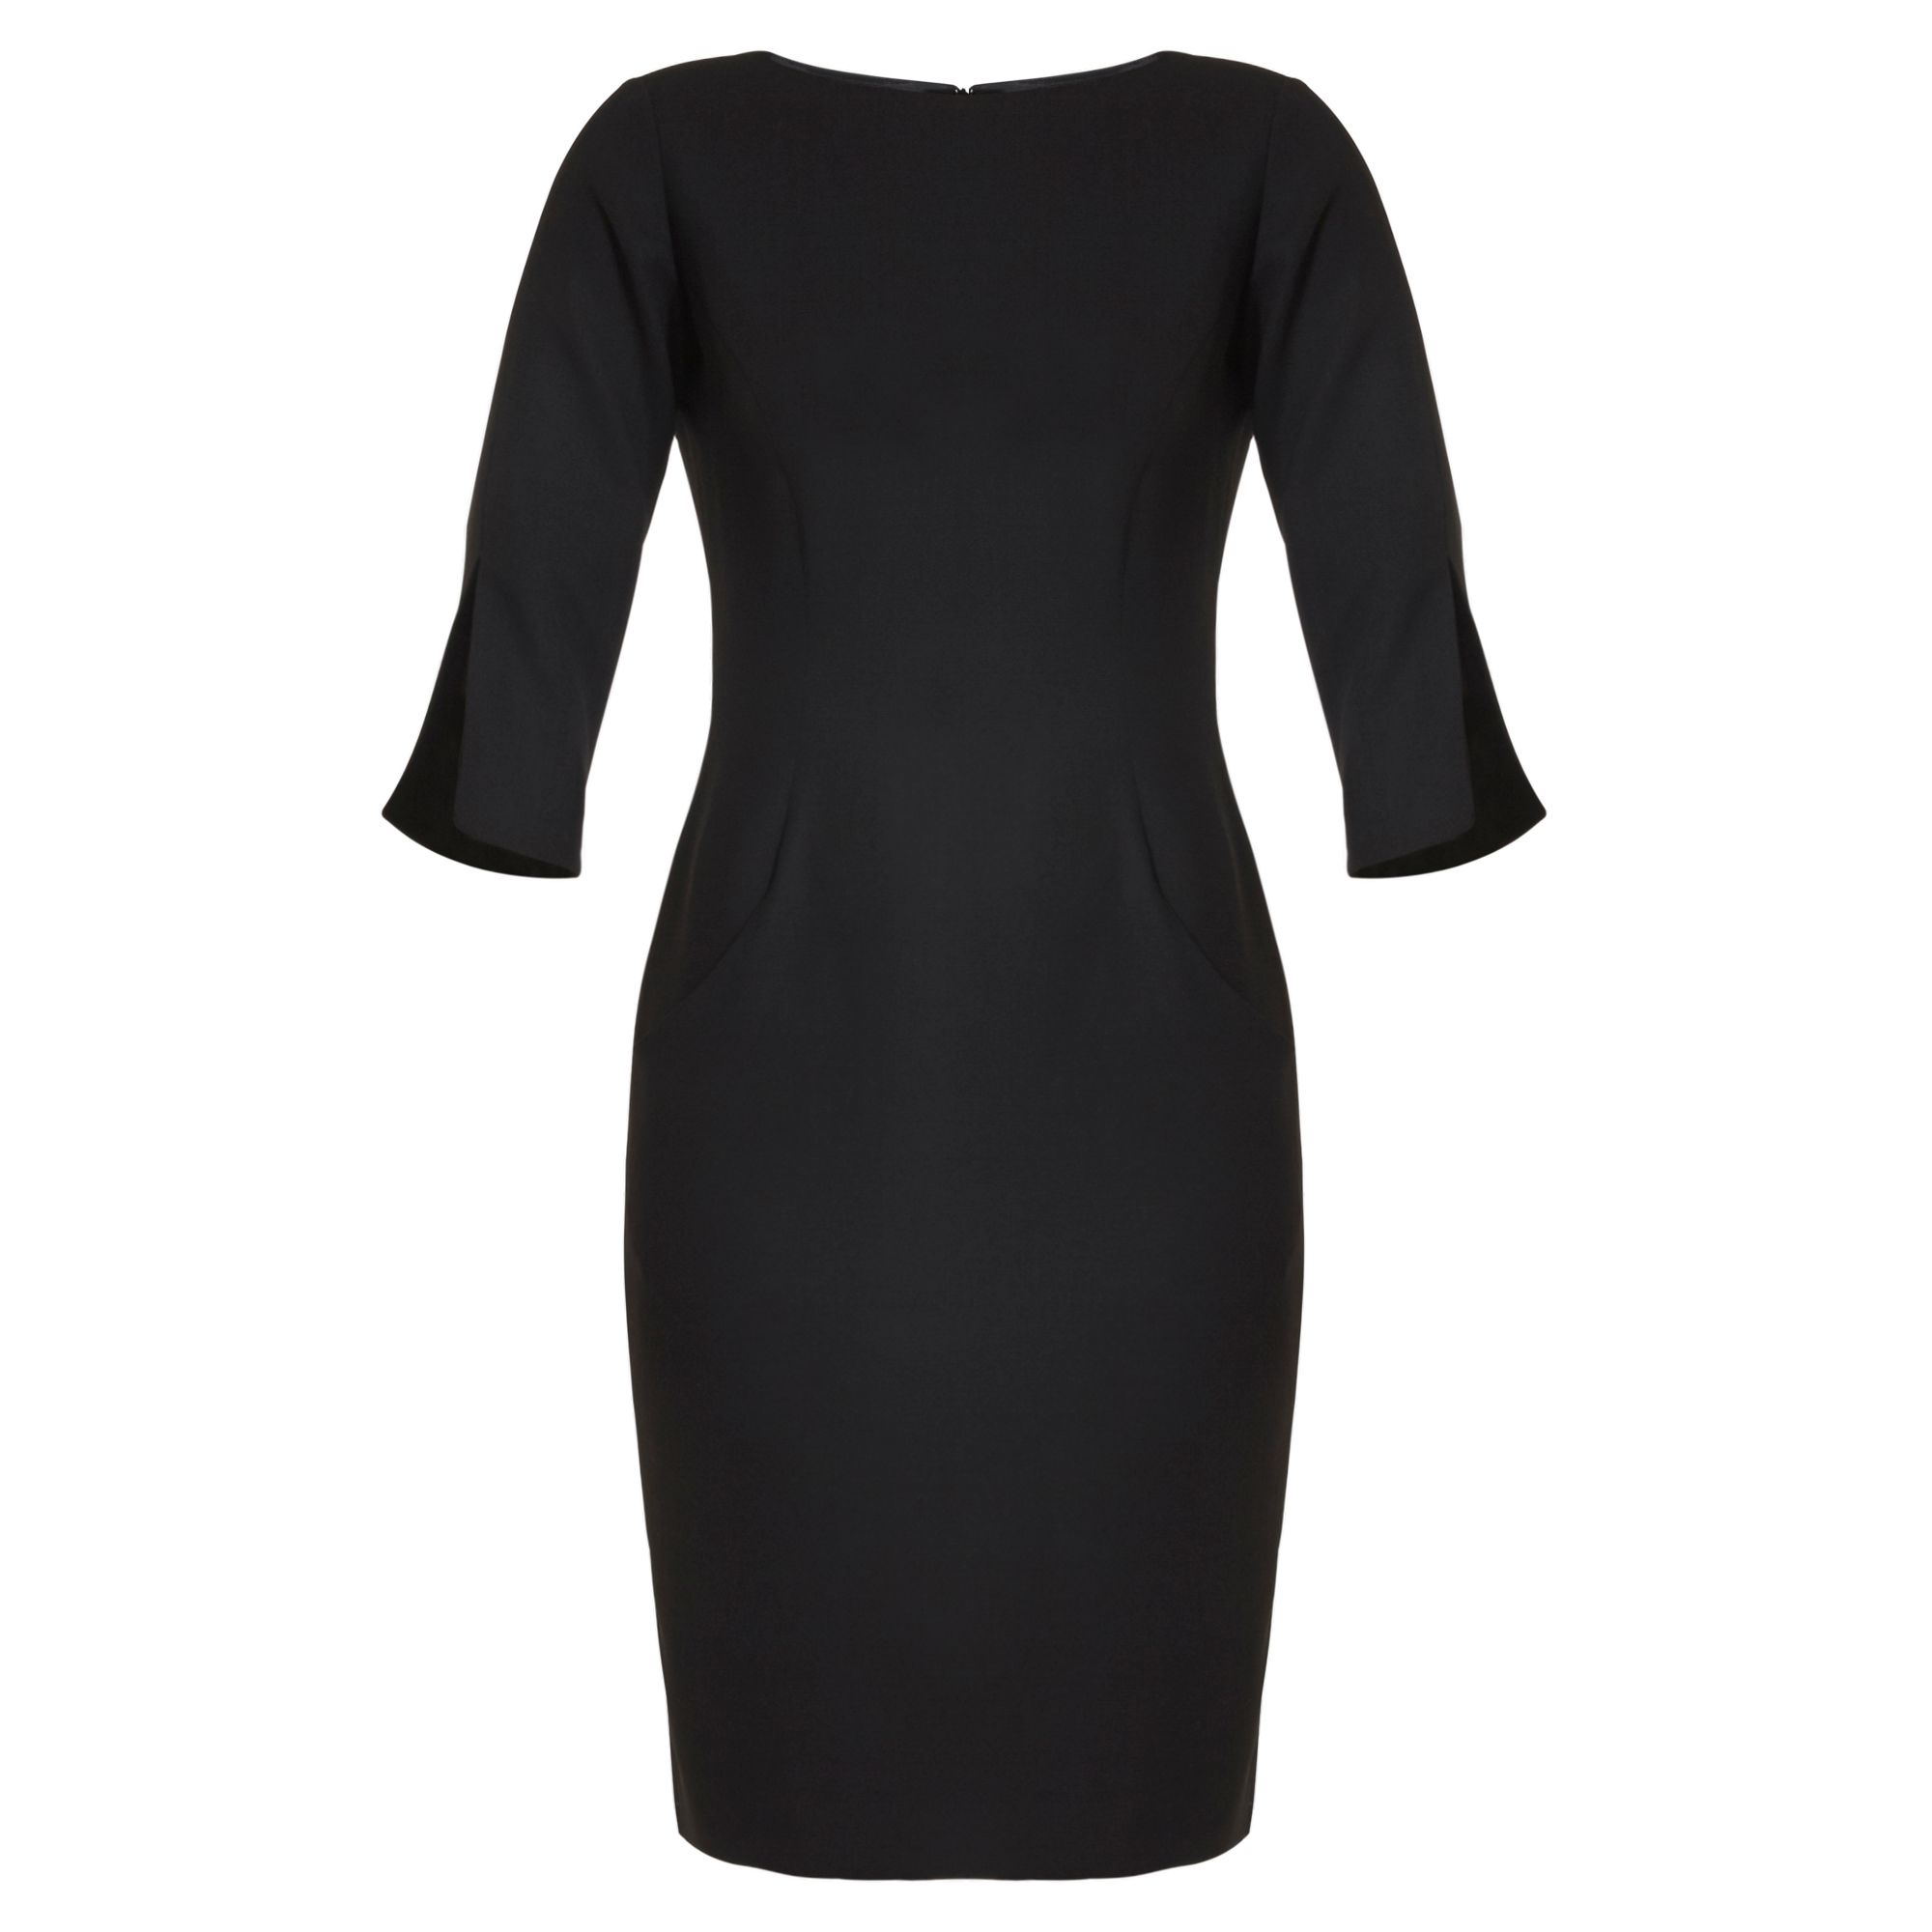 Helen McAlinden Vivienne Dress, Black